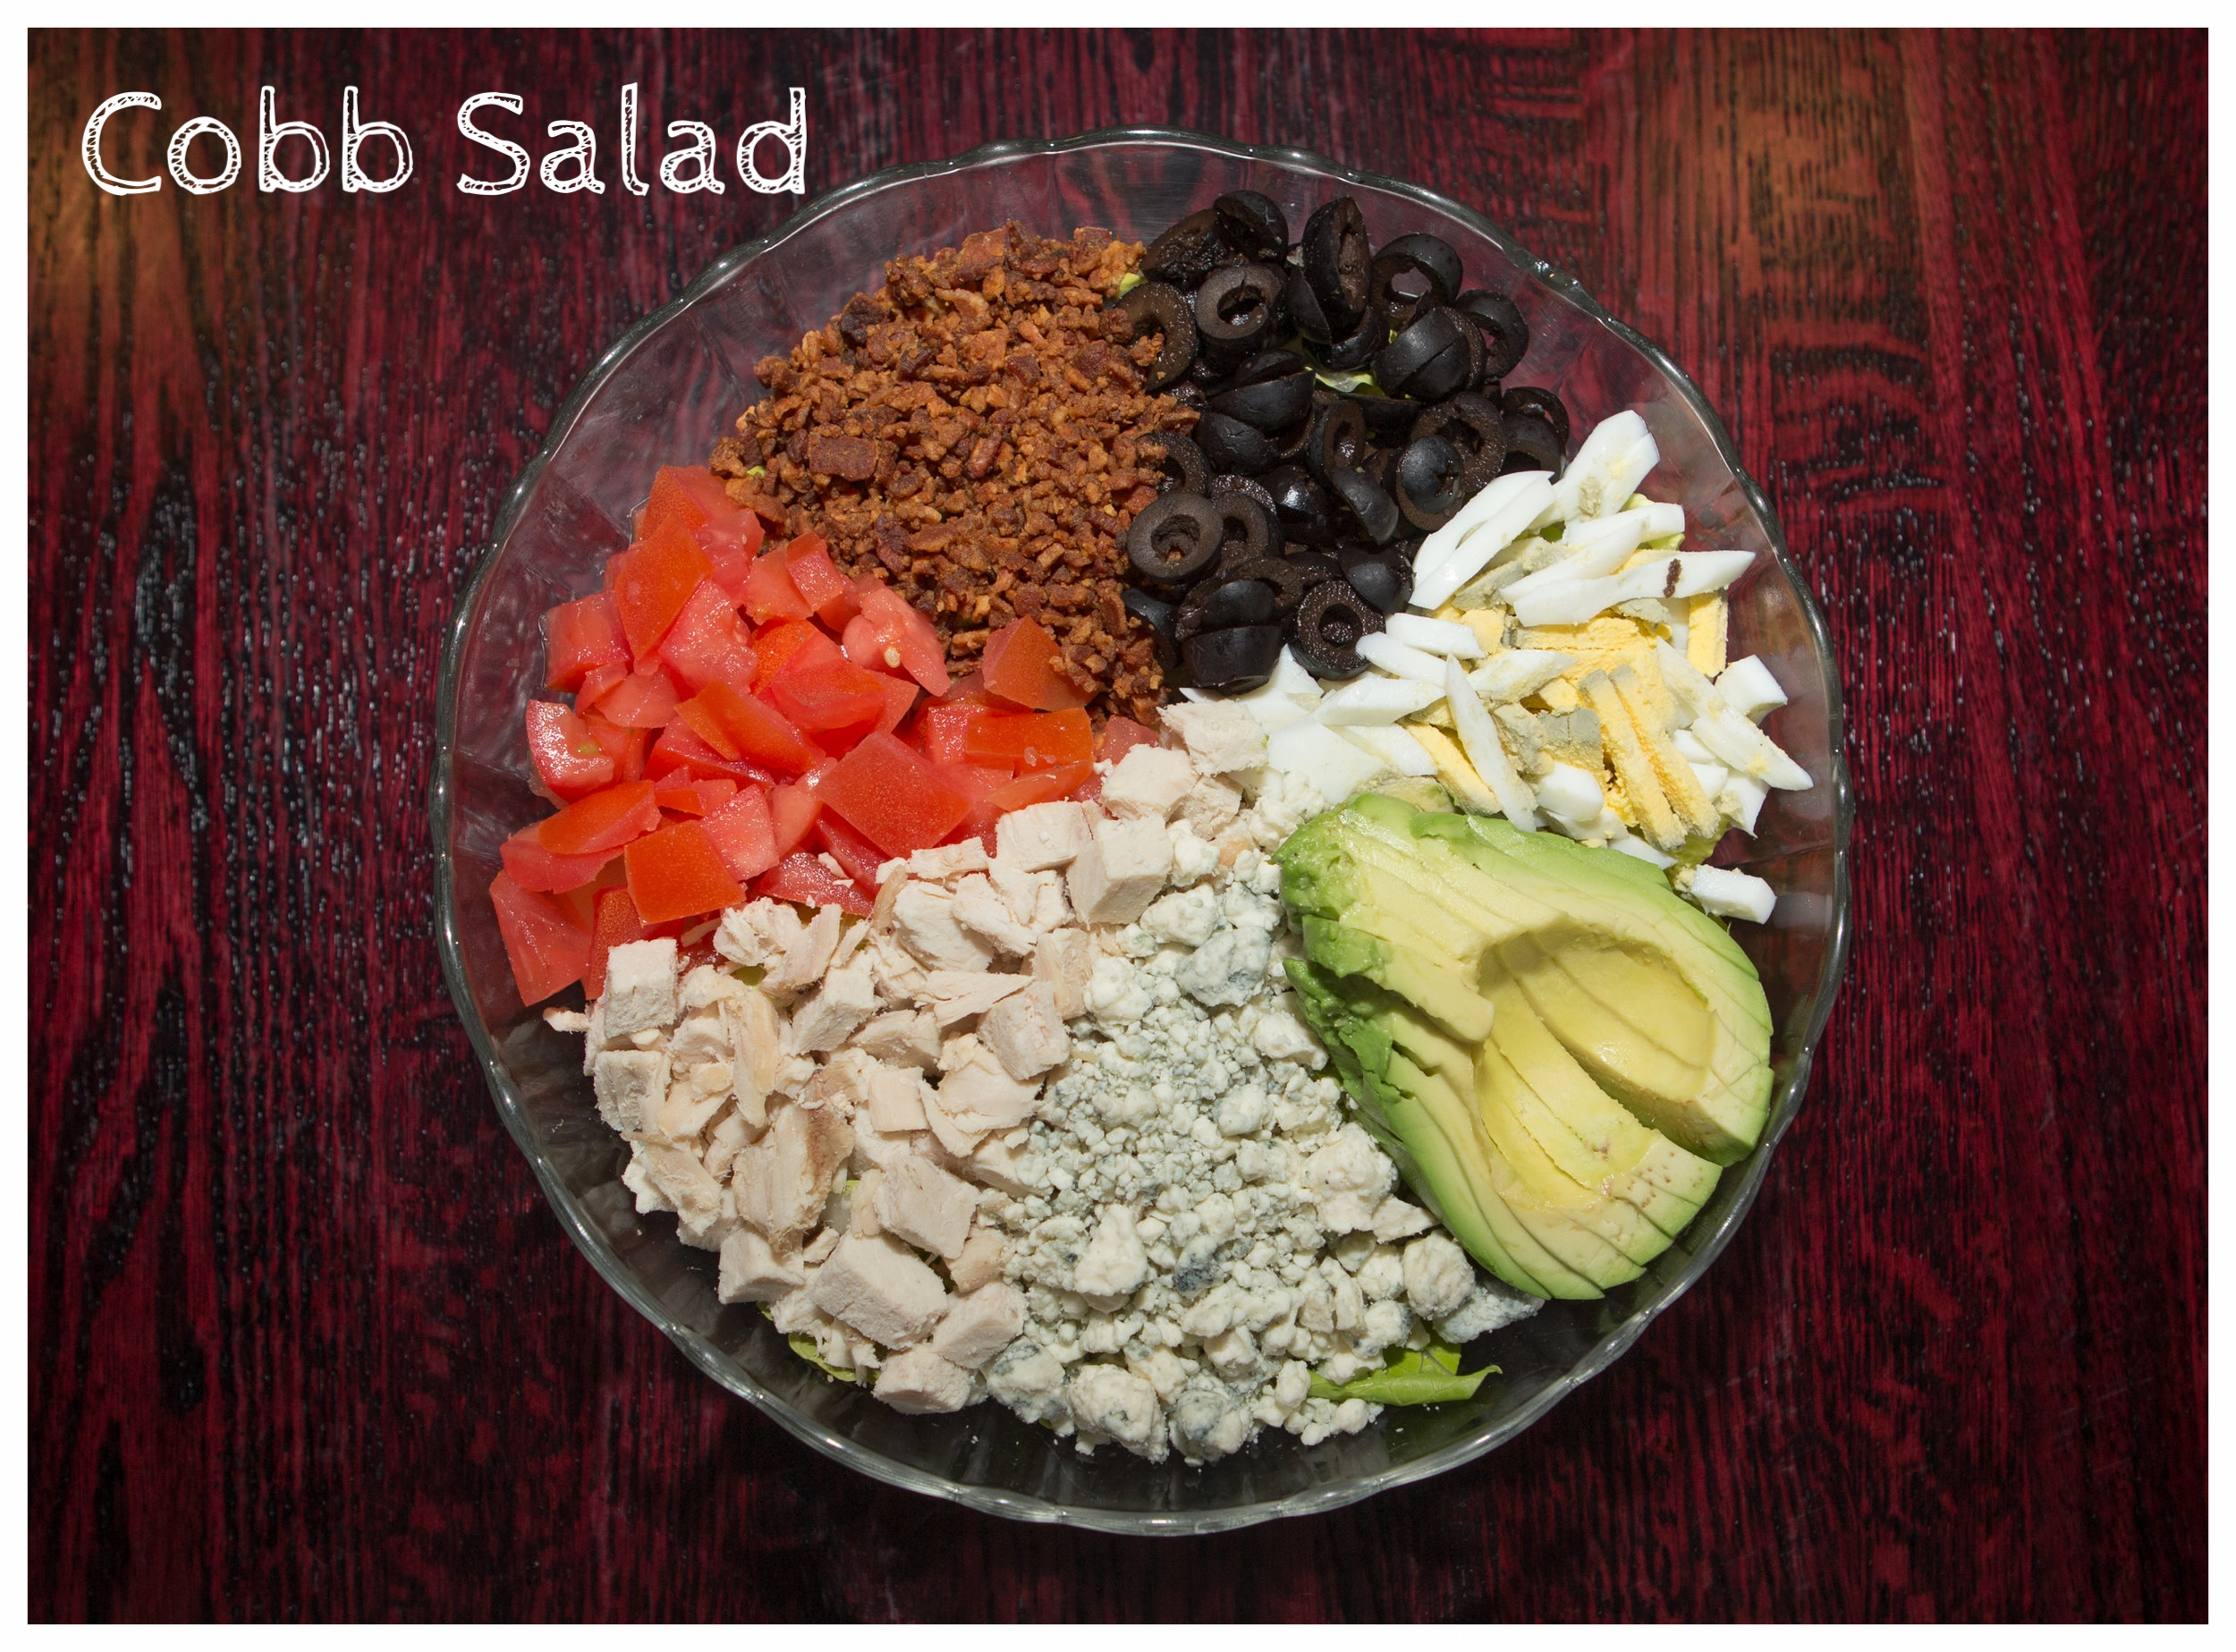 Cobb Salad (top).jpg